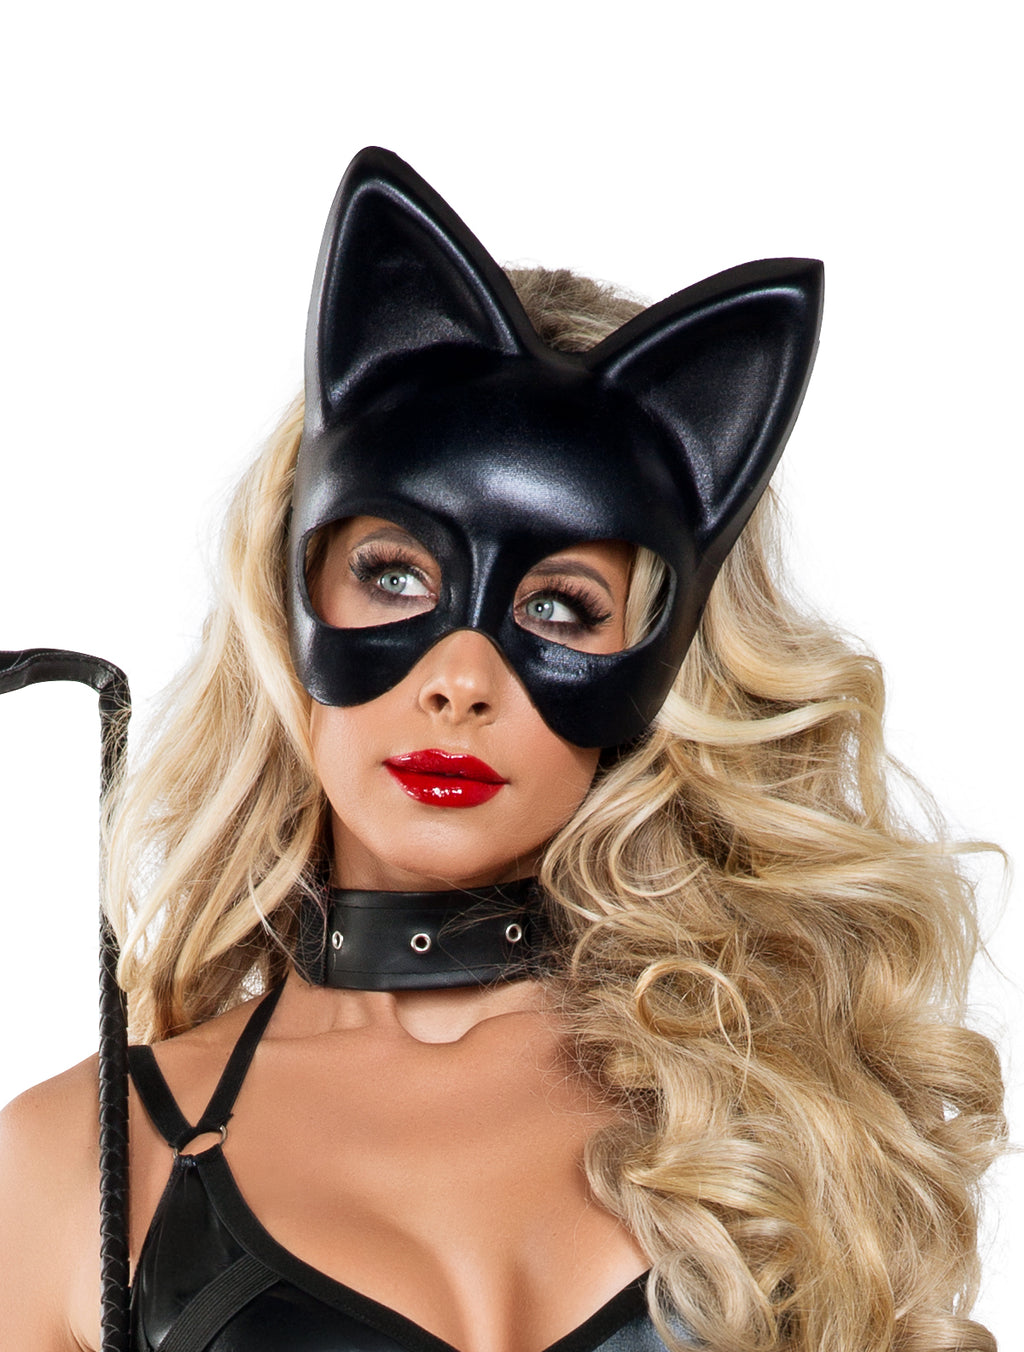 Starline Women's Full Cat Mask Roleplay Costume Accessory Womens Costume Accessories - Nastassy